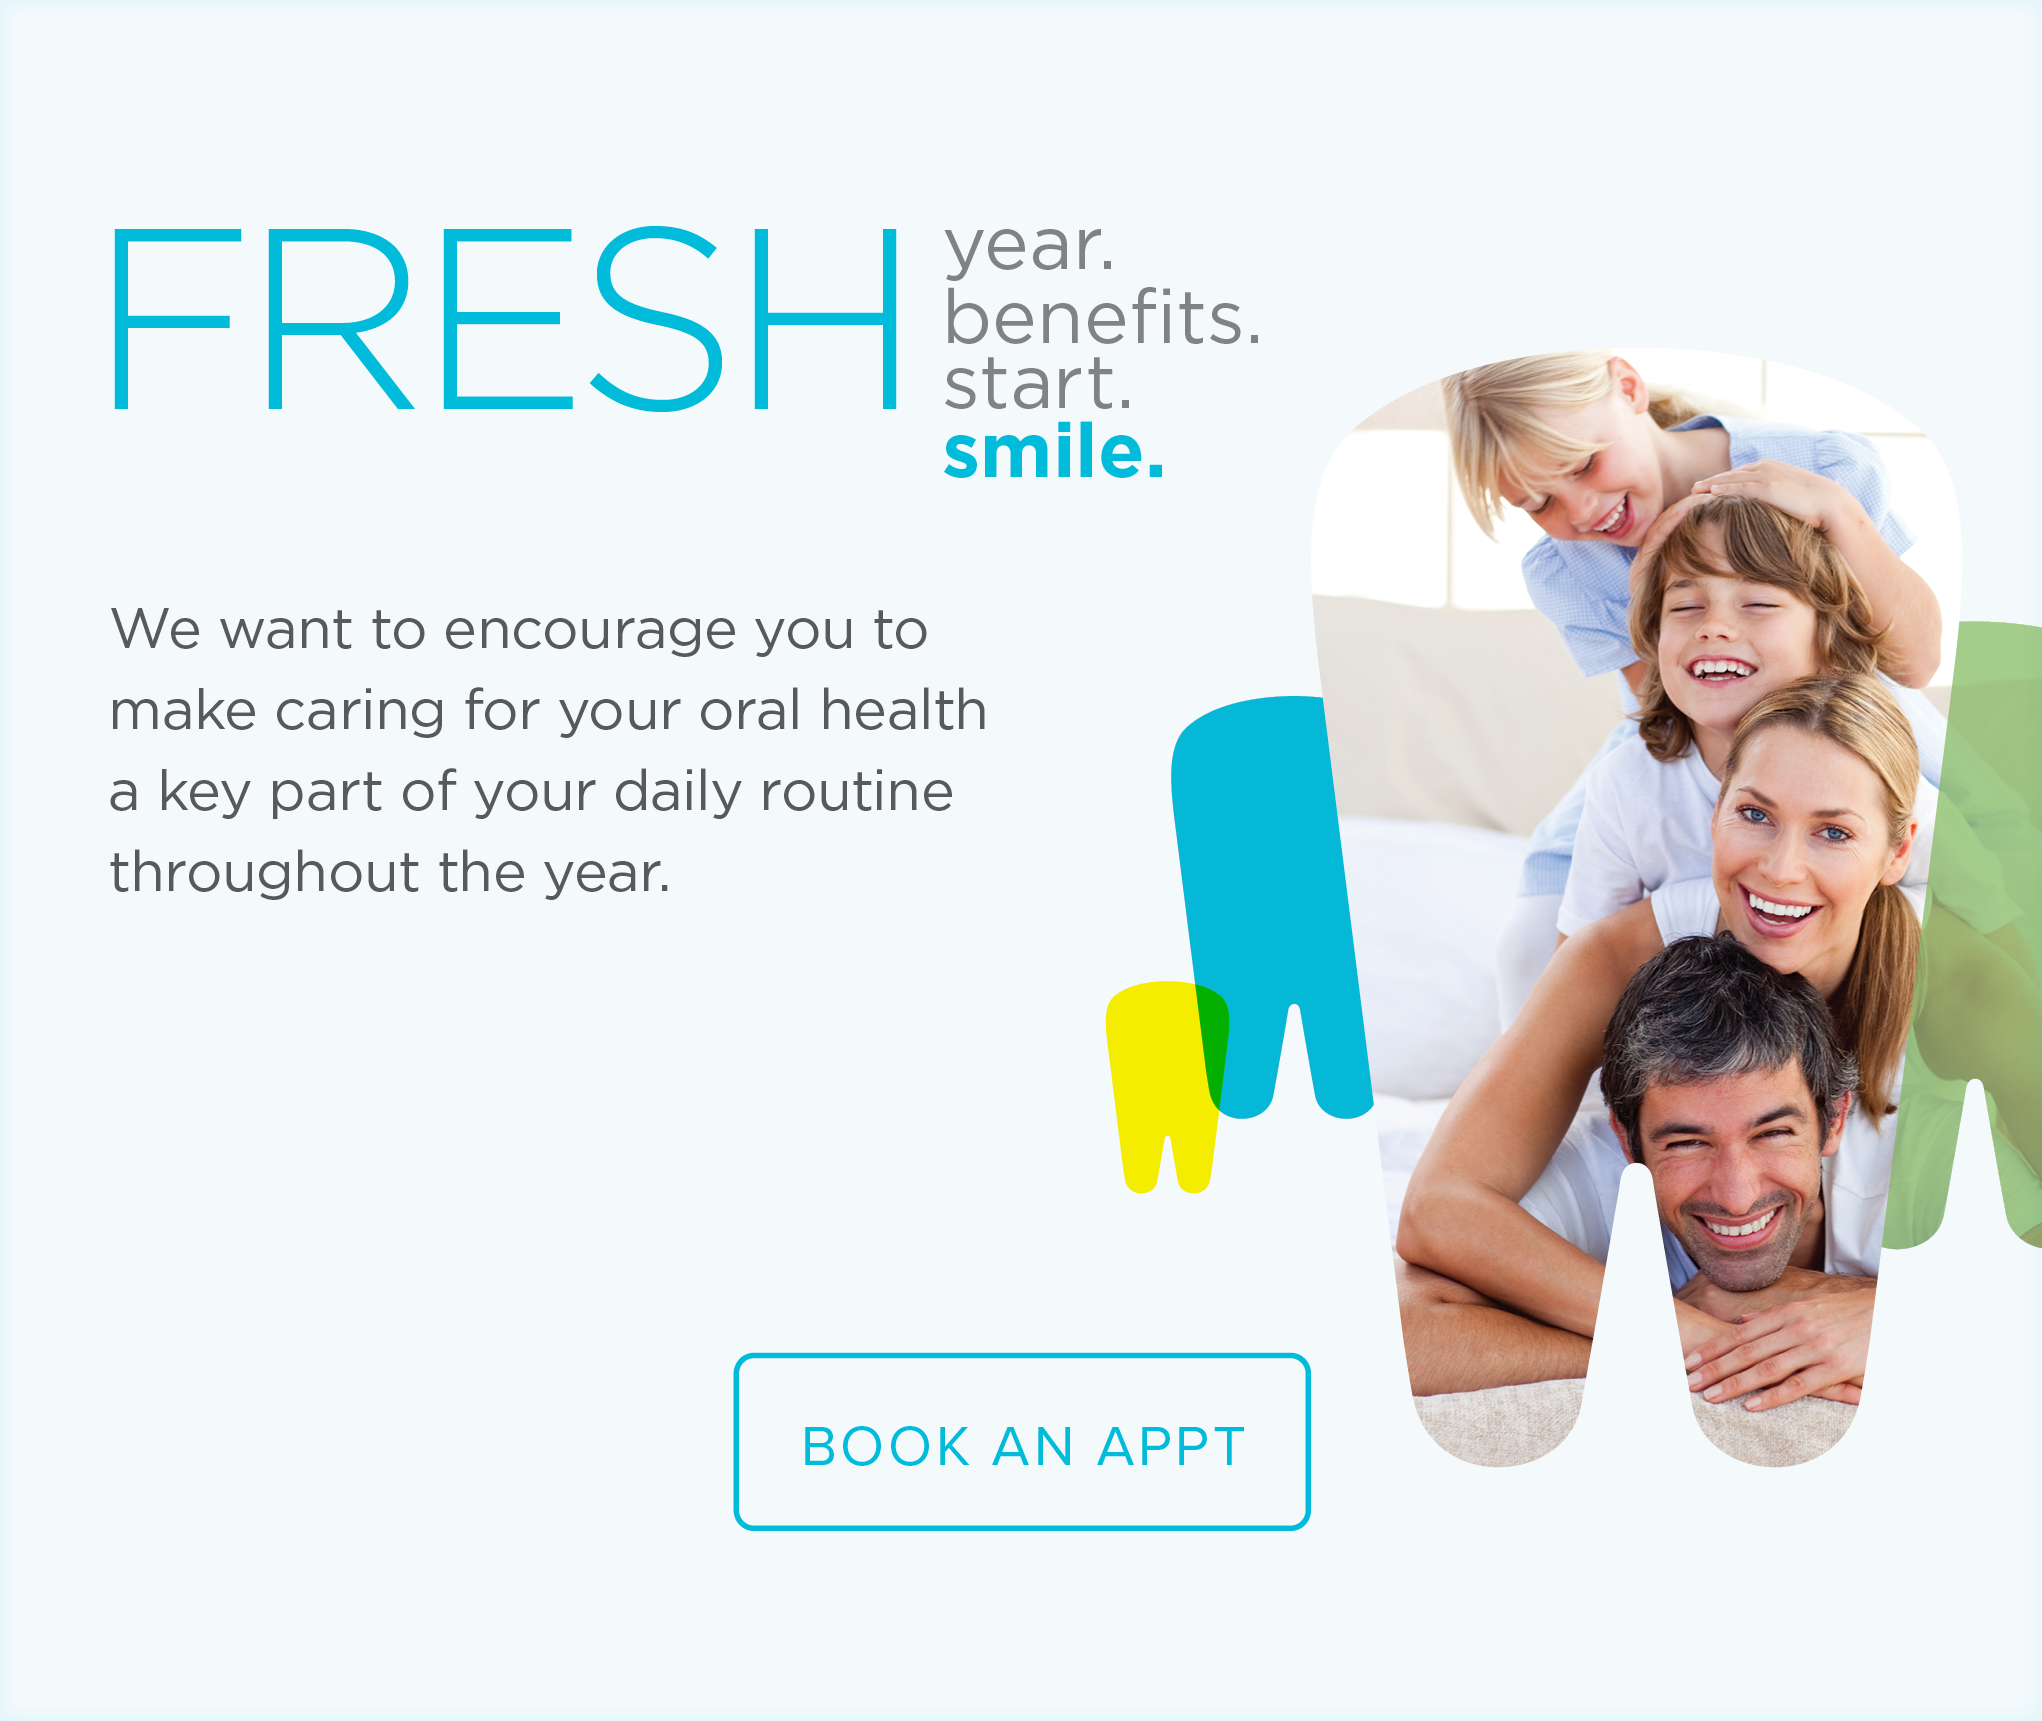 Fulshear Modern Dentistry - Make the Most of Your Benefits